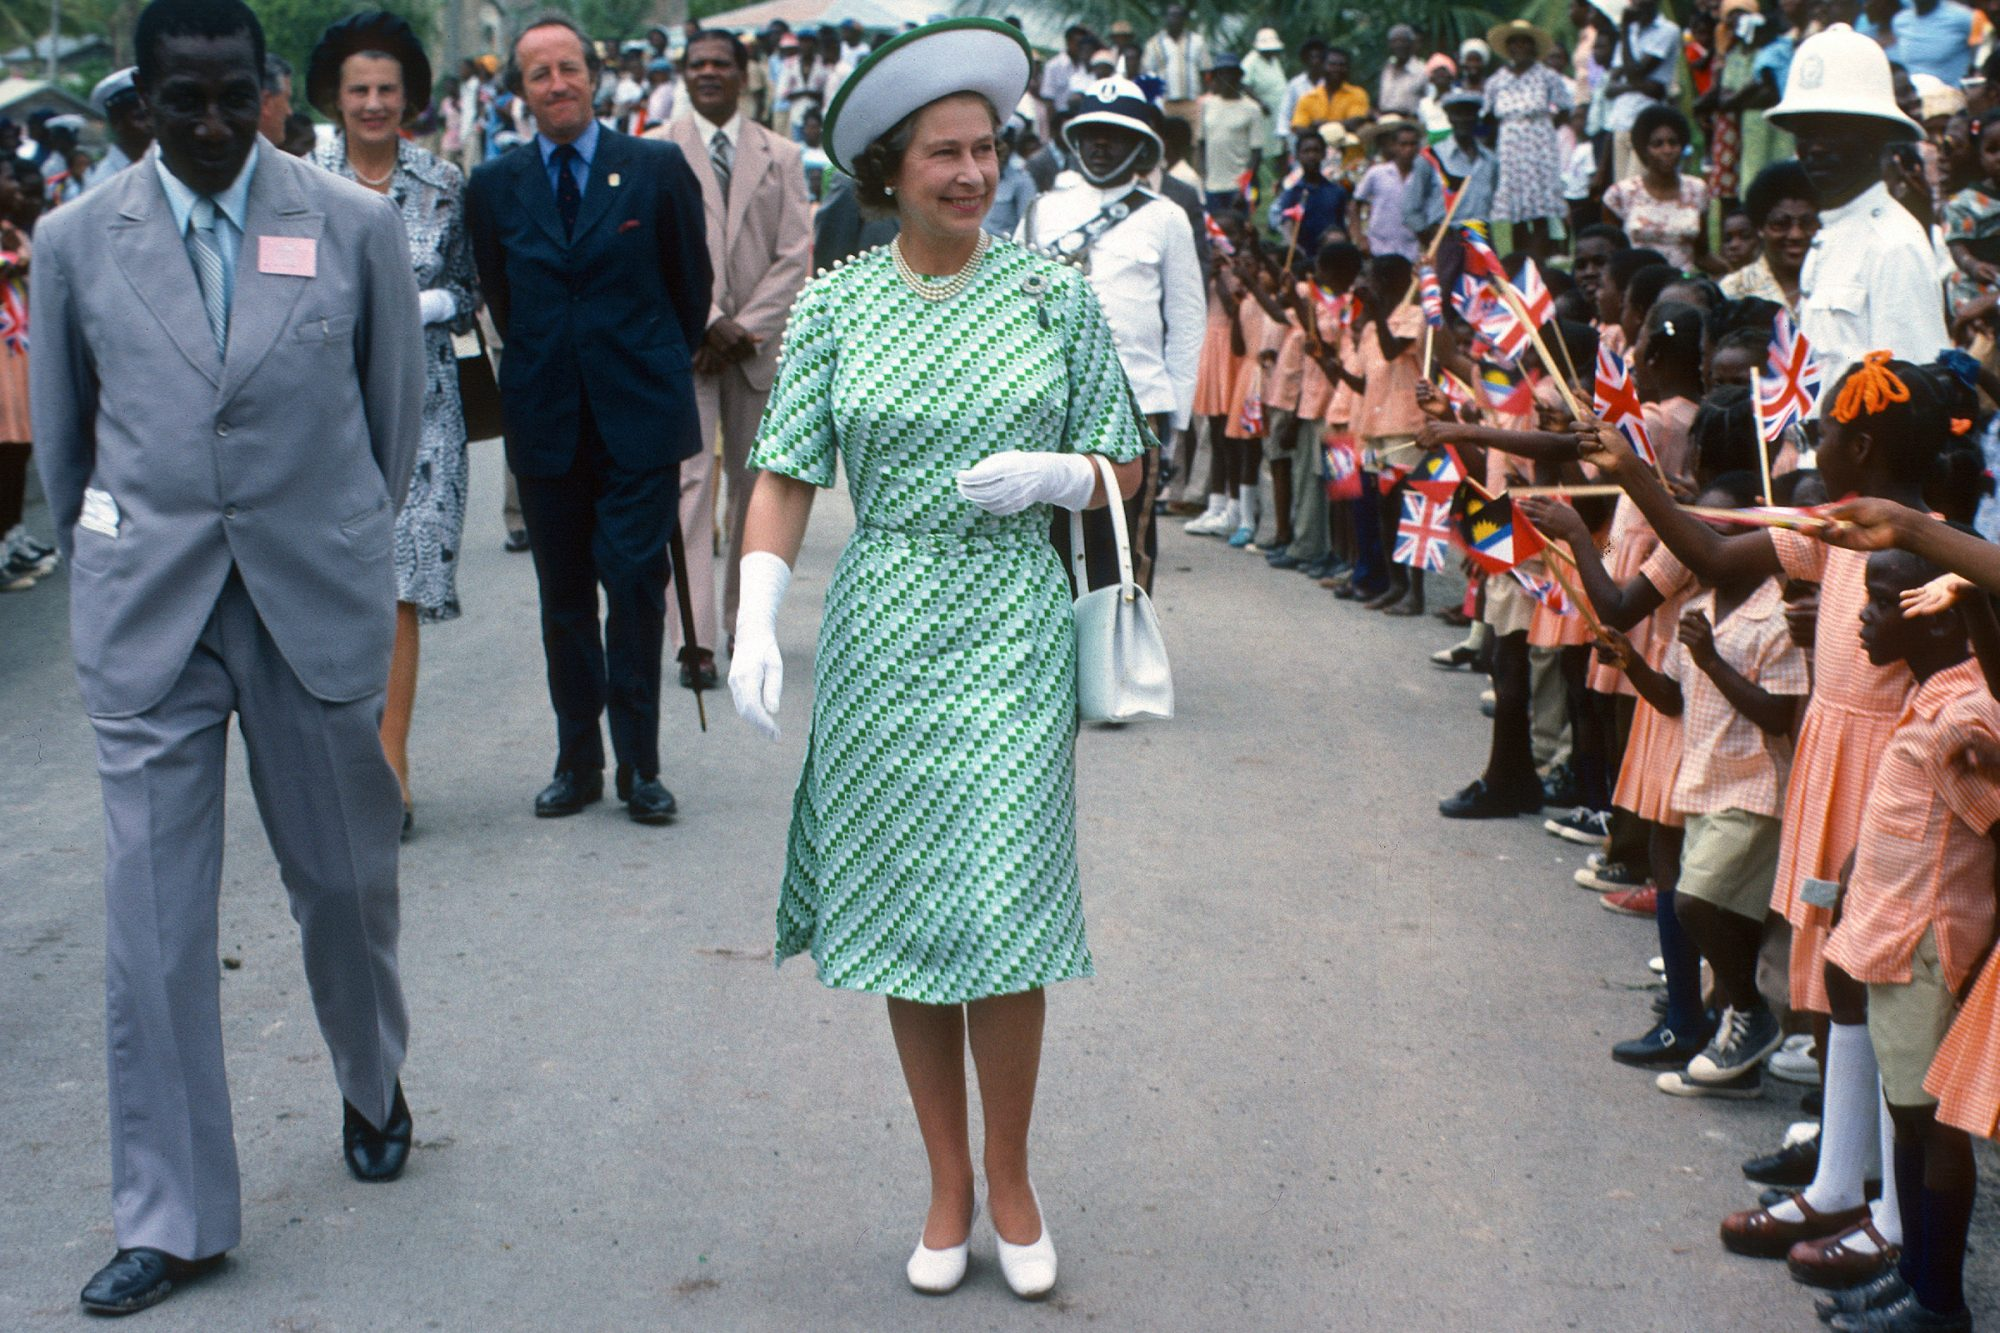 Queen Elizabeth ll is greeted by the public during a walkabout in Barbados on November 01, 1977 in Barbados